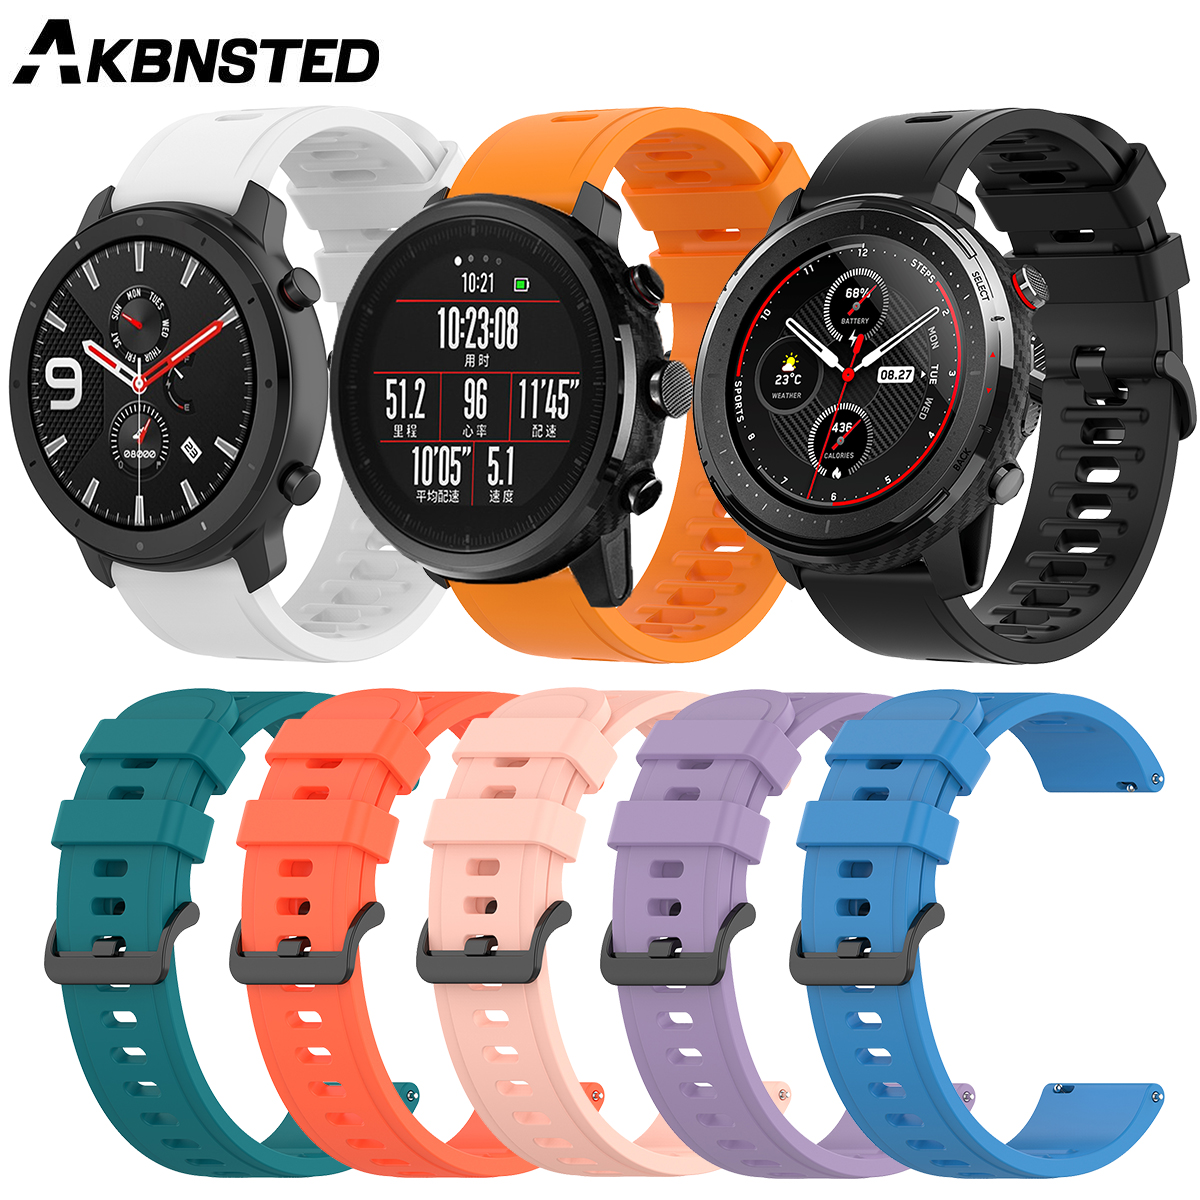 AKBNSTED 22MM Soft Silicone Replacement Strap For Xiaomi Huami Amazfit Stratos 3/GTR 47MM/Pace/Stratos2 Smart Watch Accessories